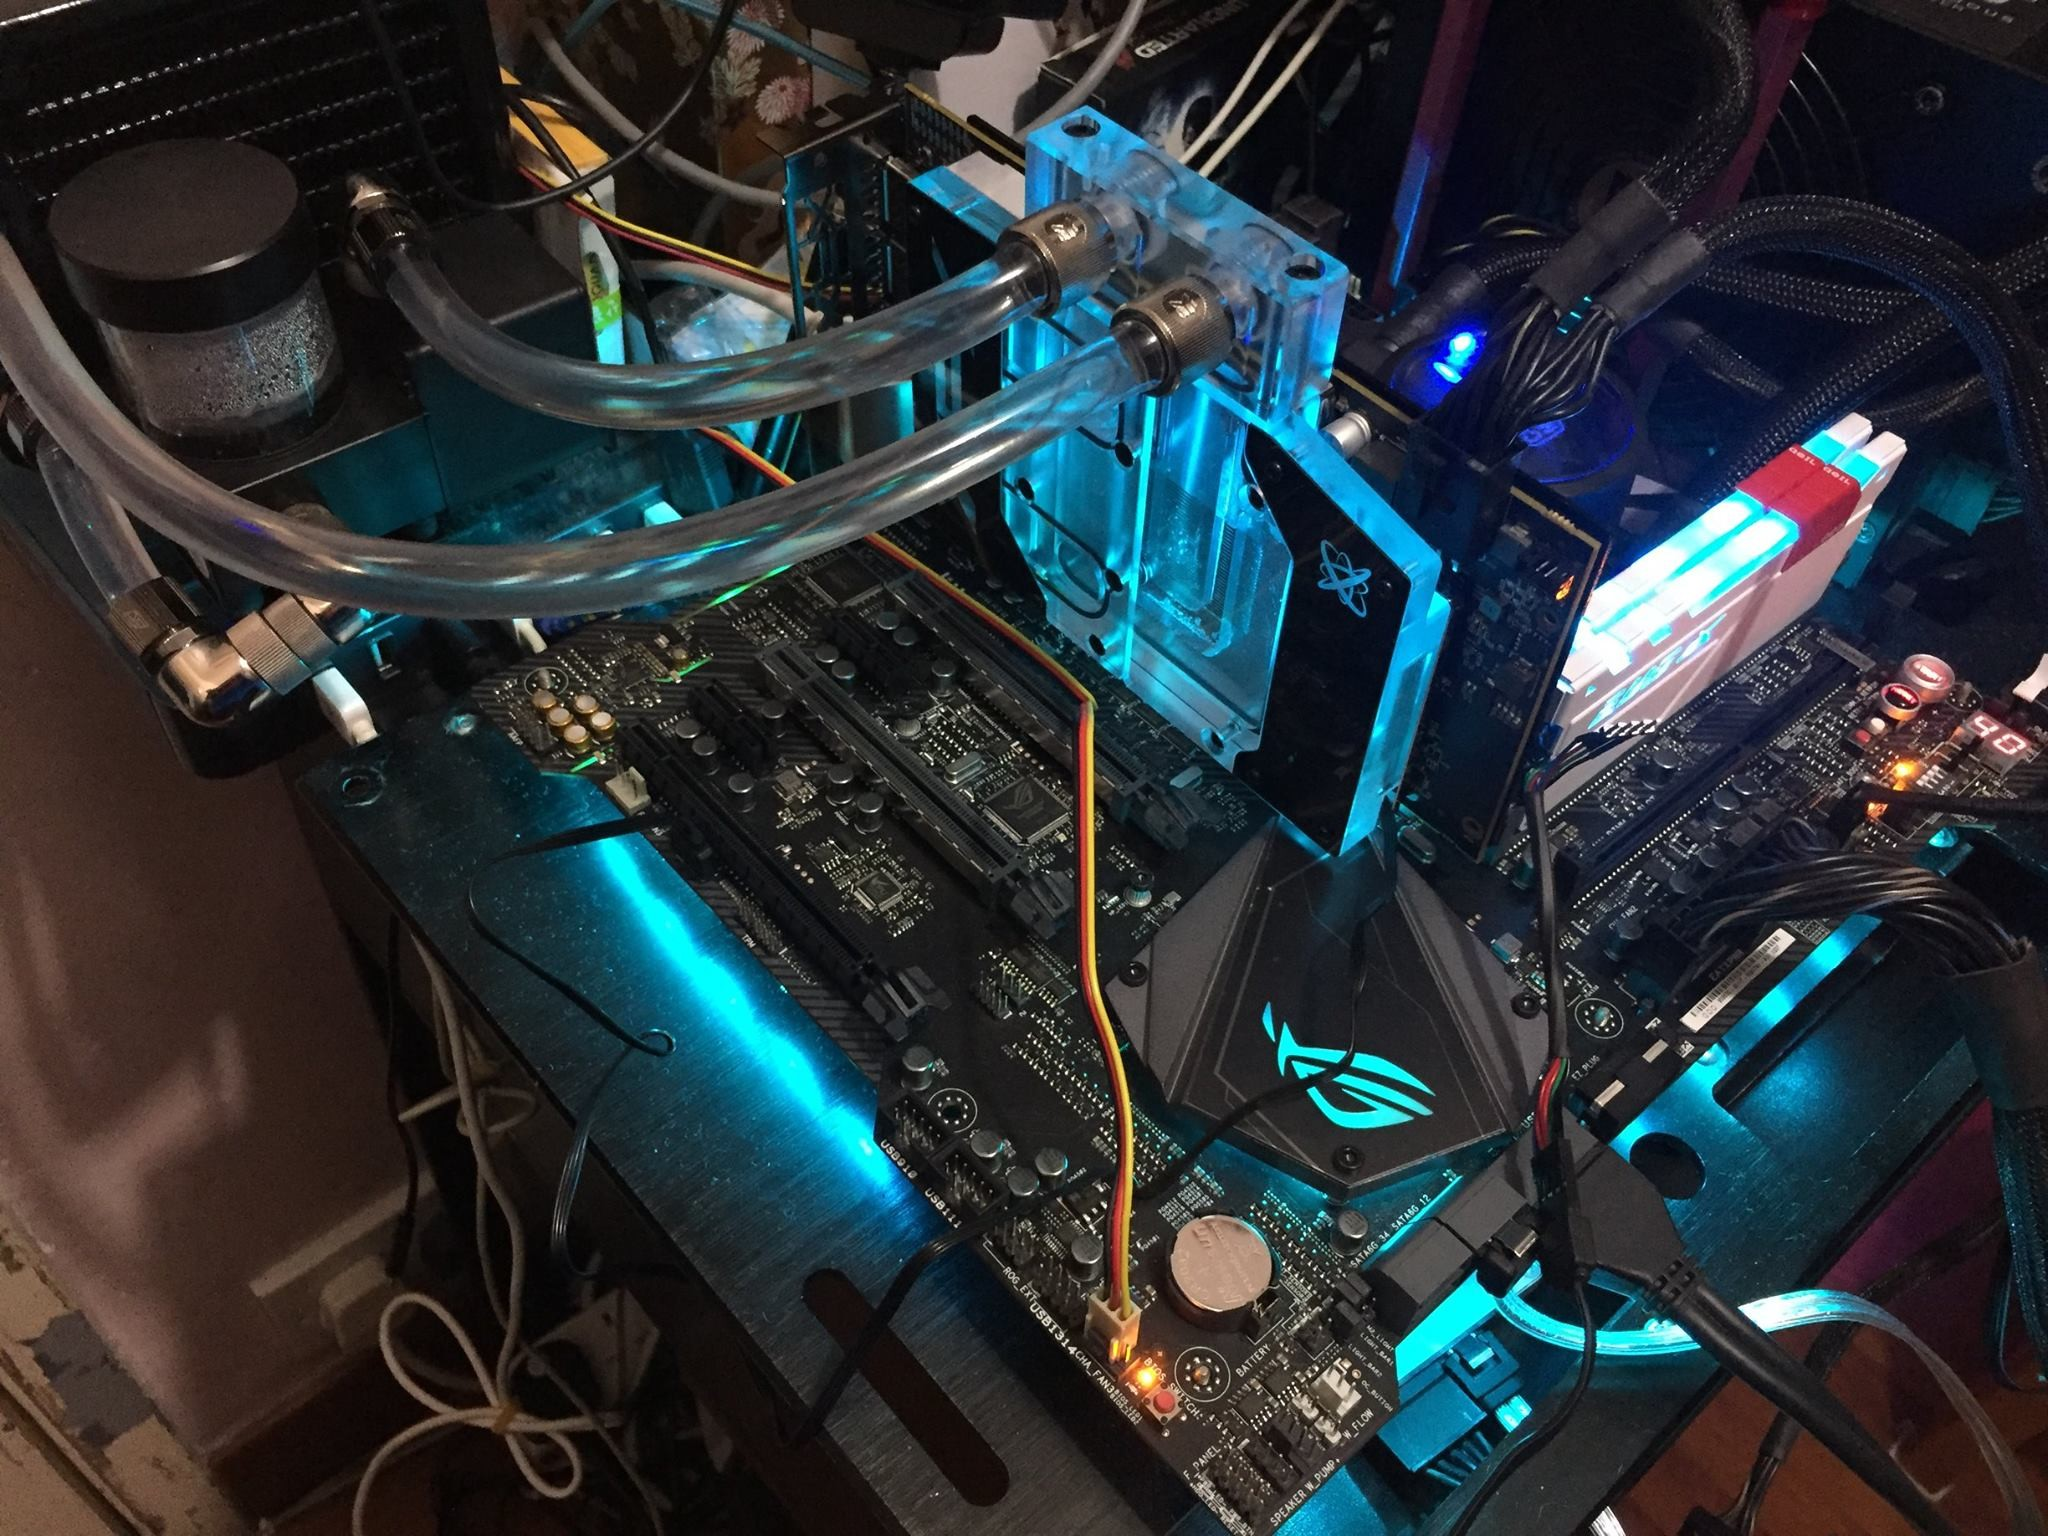 2048x1536 AMD Radeon RX 580 Overclocking and Benchmarks Unveiled – Clocked Up To 1500  MHz On Liquid Cooling